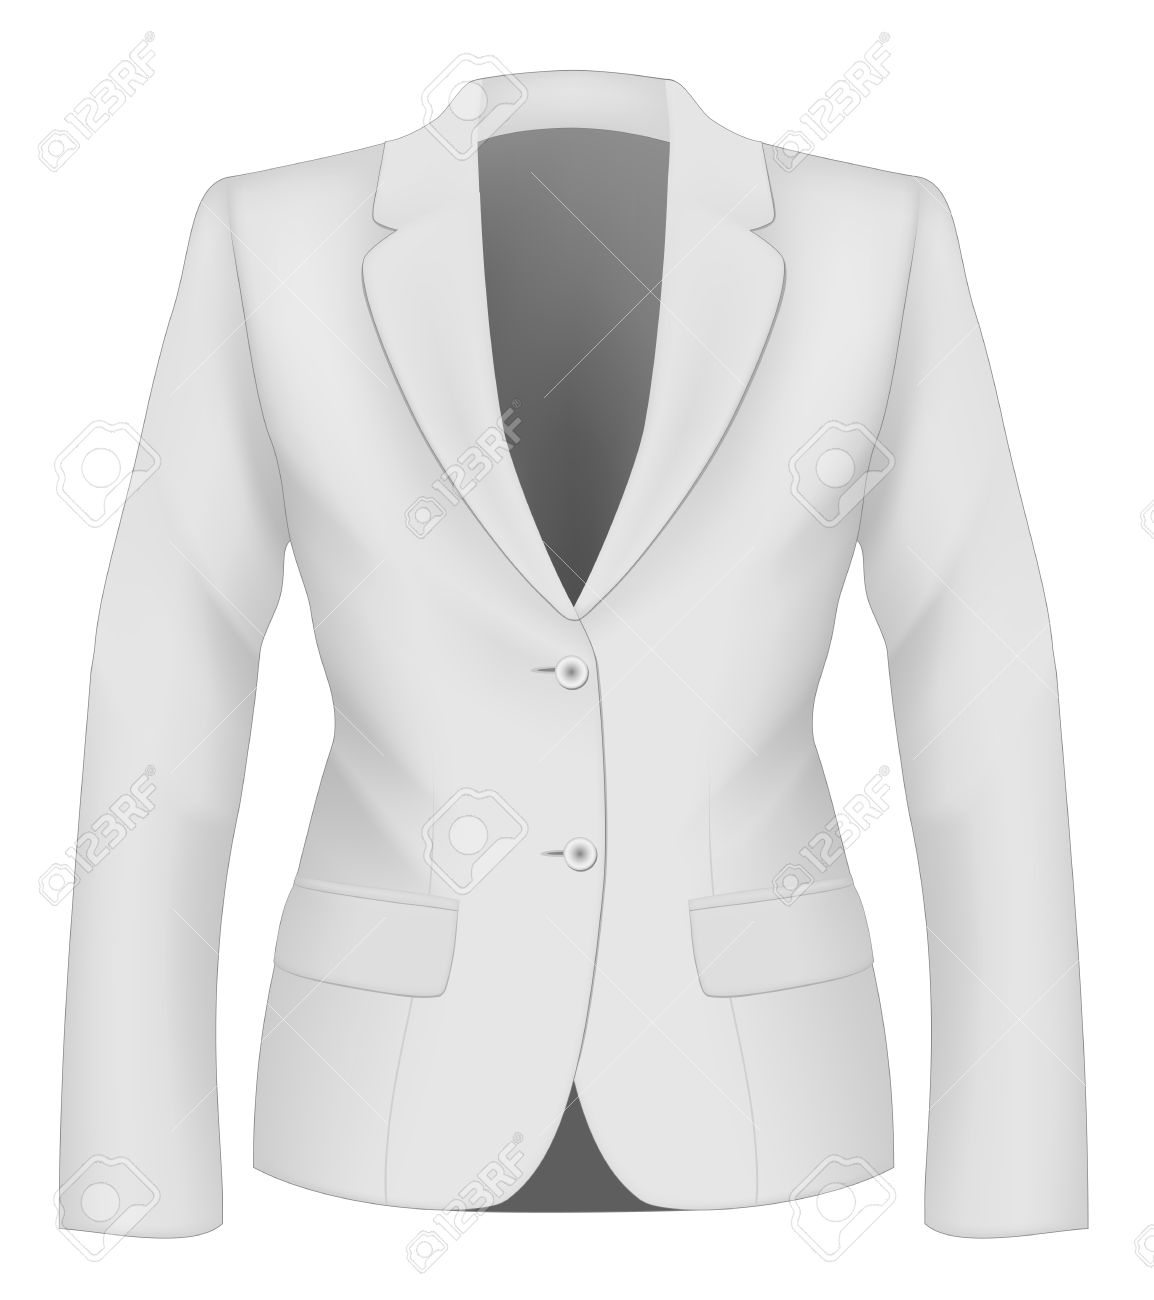 Ladies White Suit Jacket For Business Women. Formal Work Wear ...